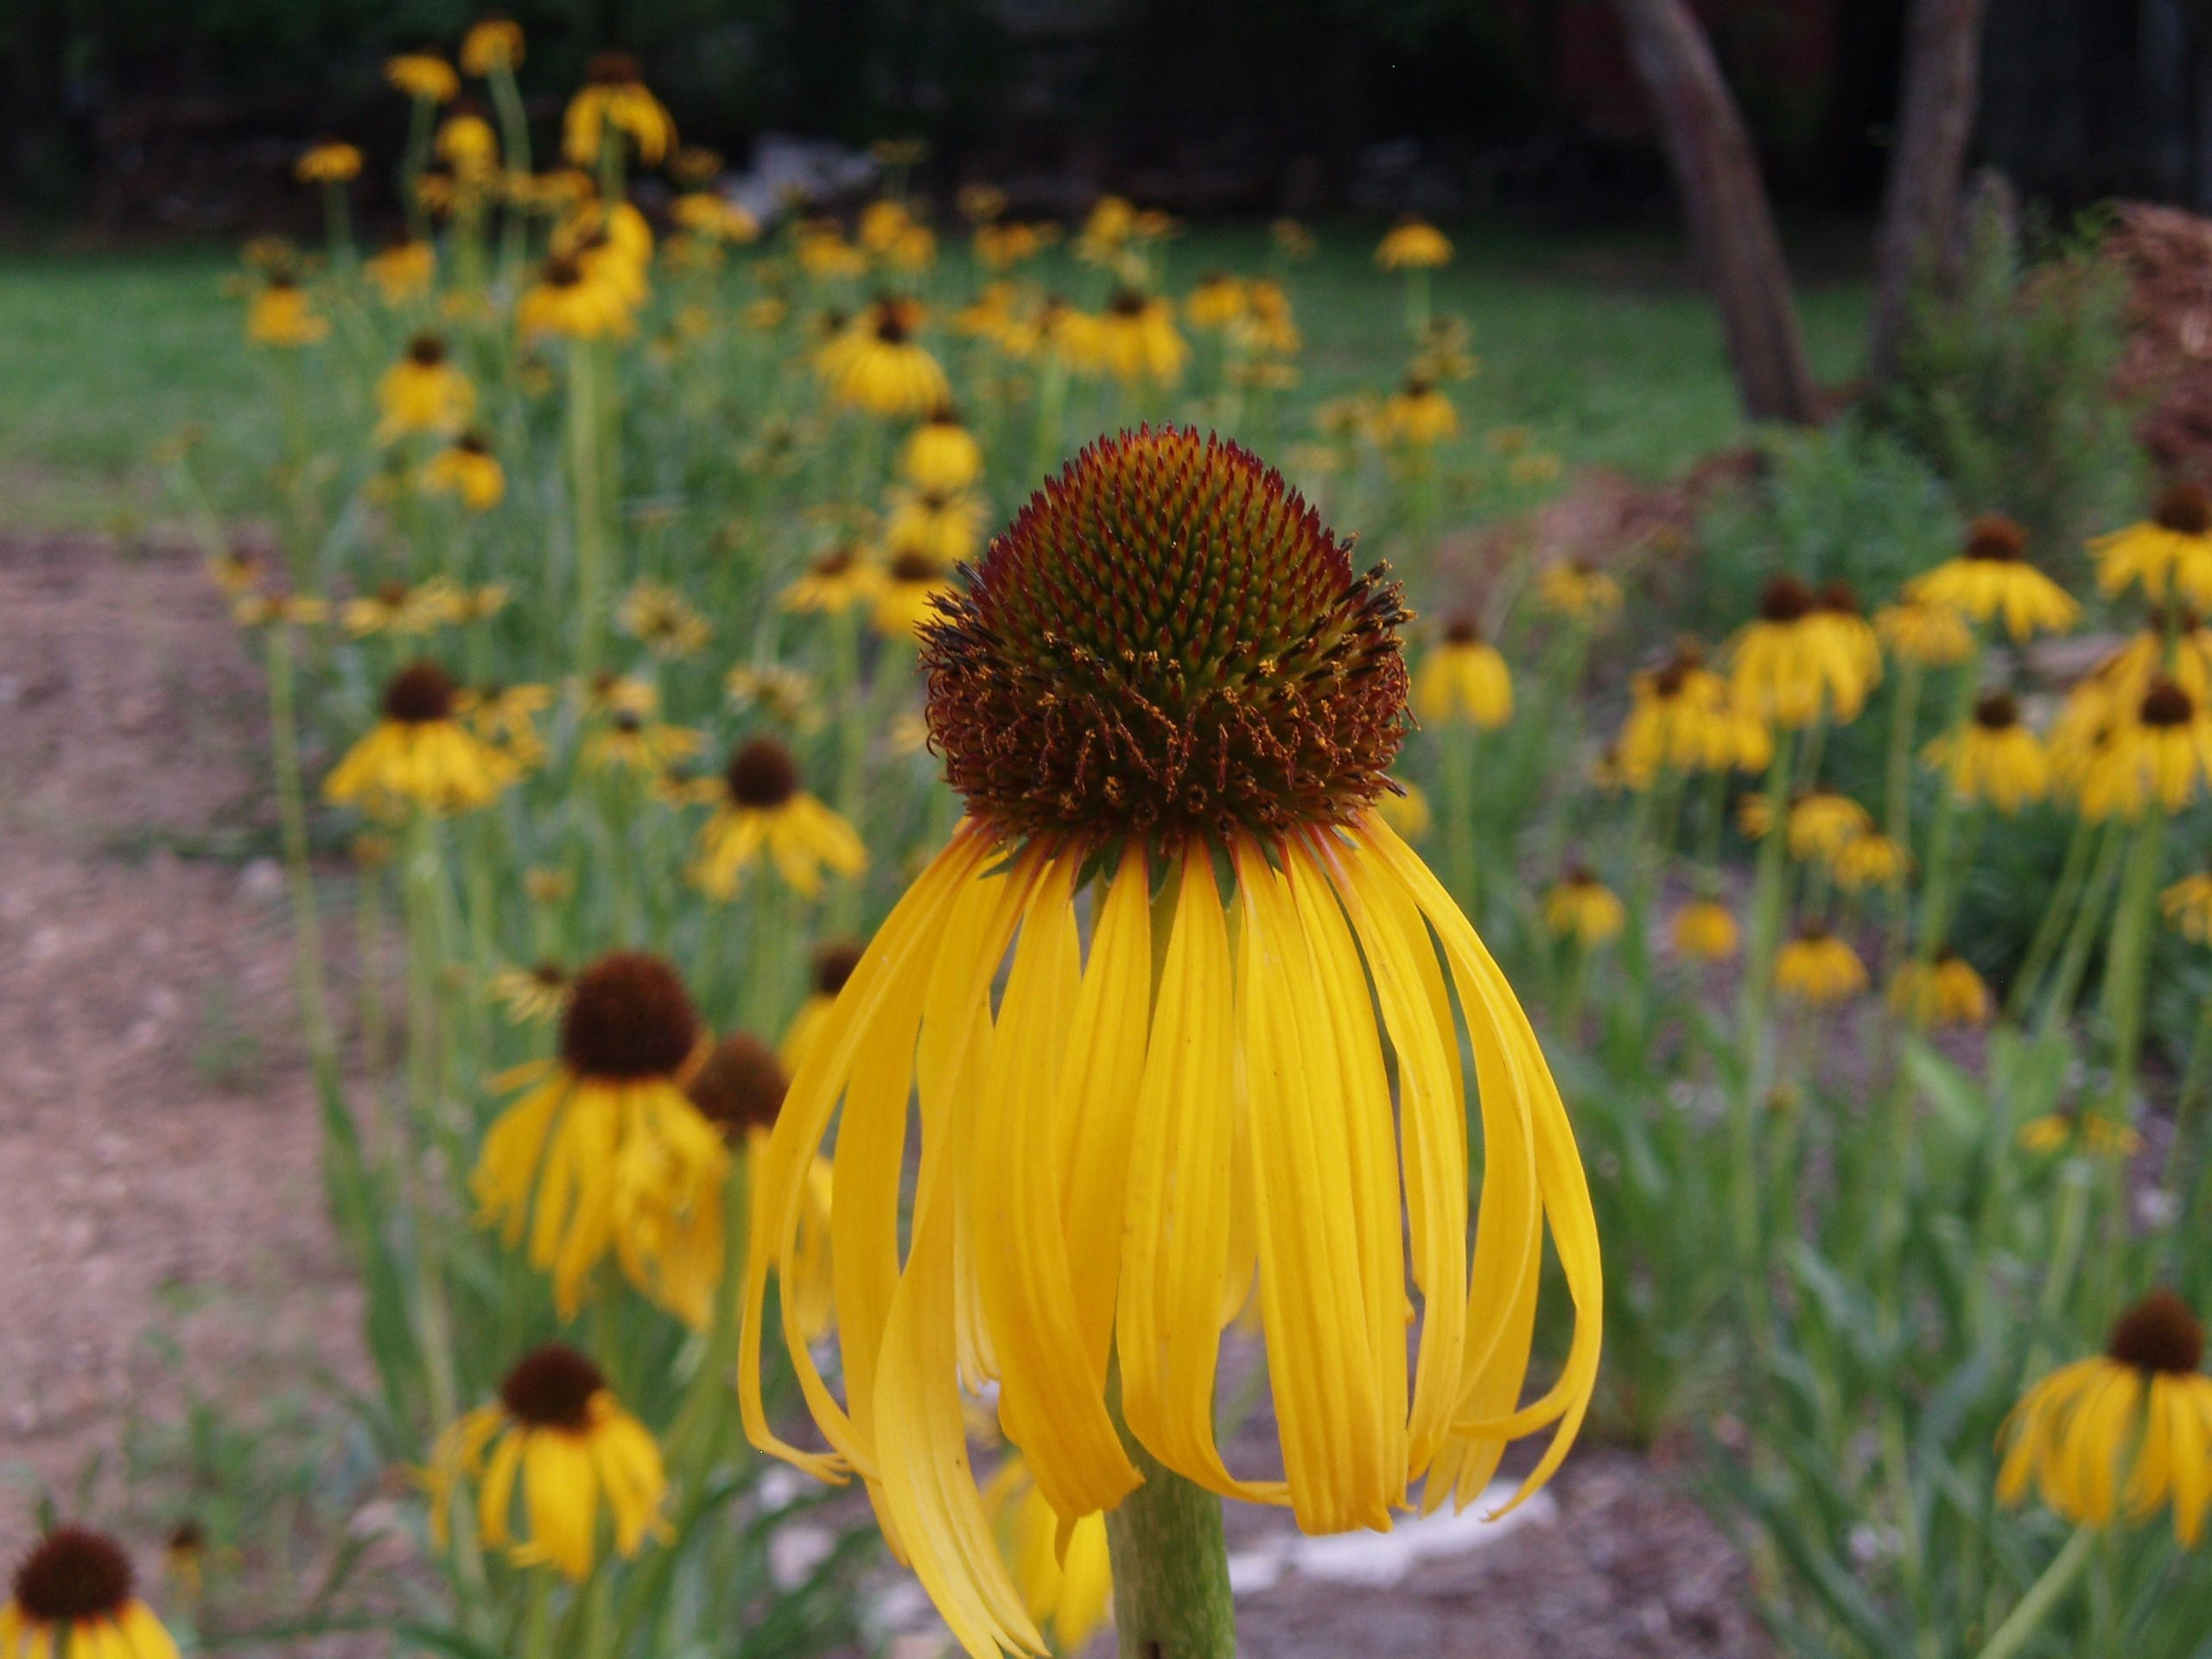 "{""blocks"":[{""key"":""bahqu"",""text"":""photo Echinacea paradoxa Yellow Coneflower -  potted plants email john@easywildflowers.com \t"",""type"":""unstyled"",""depth"":0,""inlineStyleRanges"":[],""entityRanges"":[],""data"":{}}],""entityMap"":{}}"